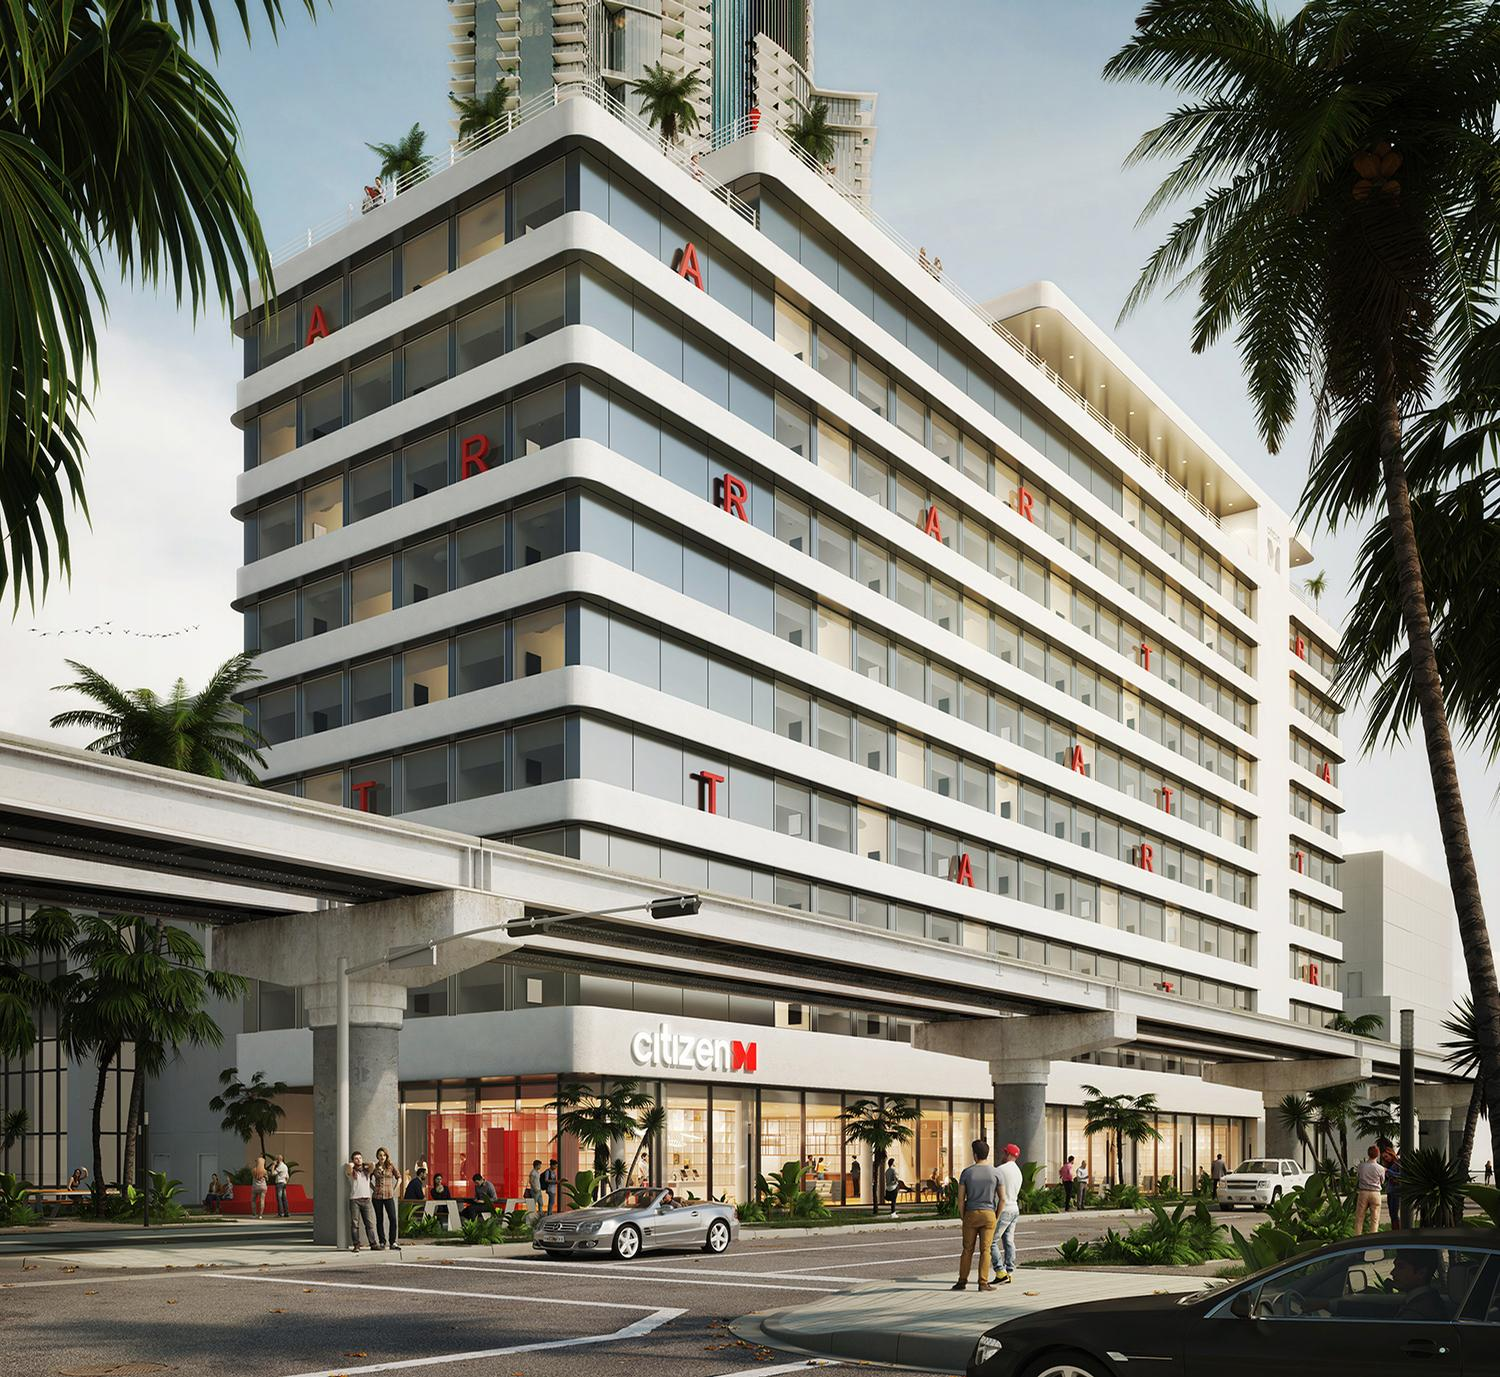 The 128,000sq ft (11,900sq m), 12-storey hotel will accommodate 351 guestrooms / CitizenM